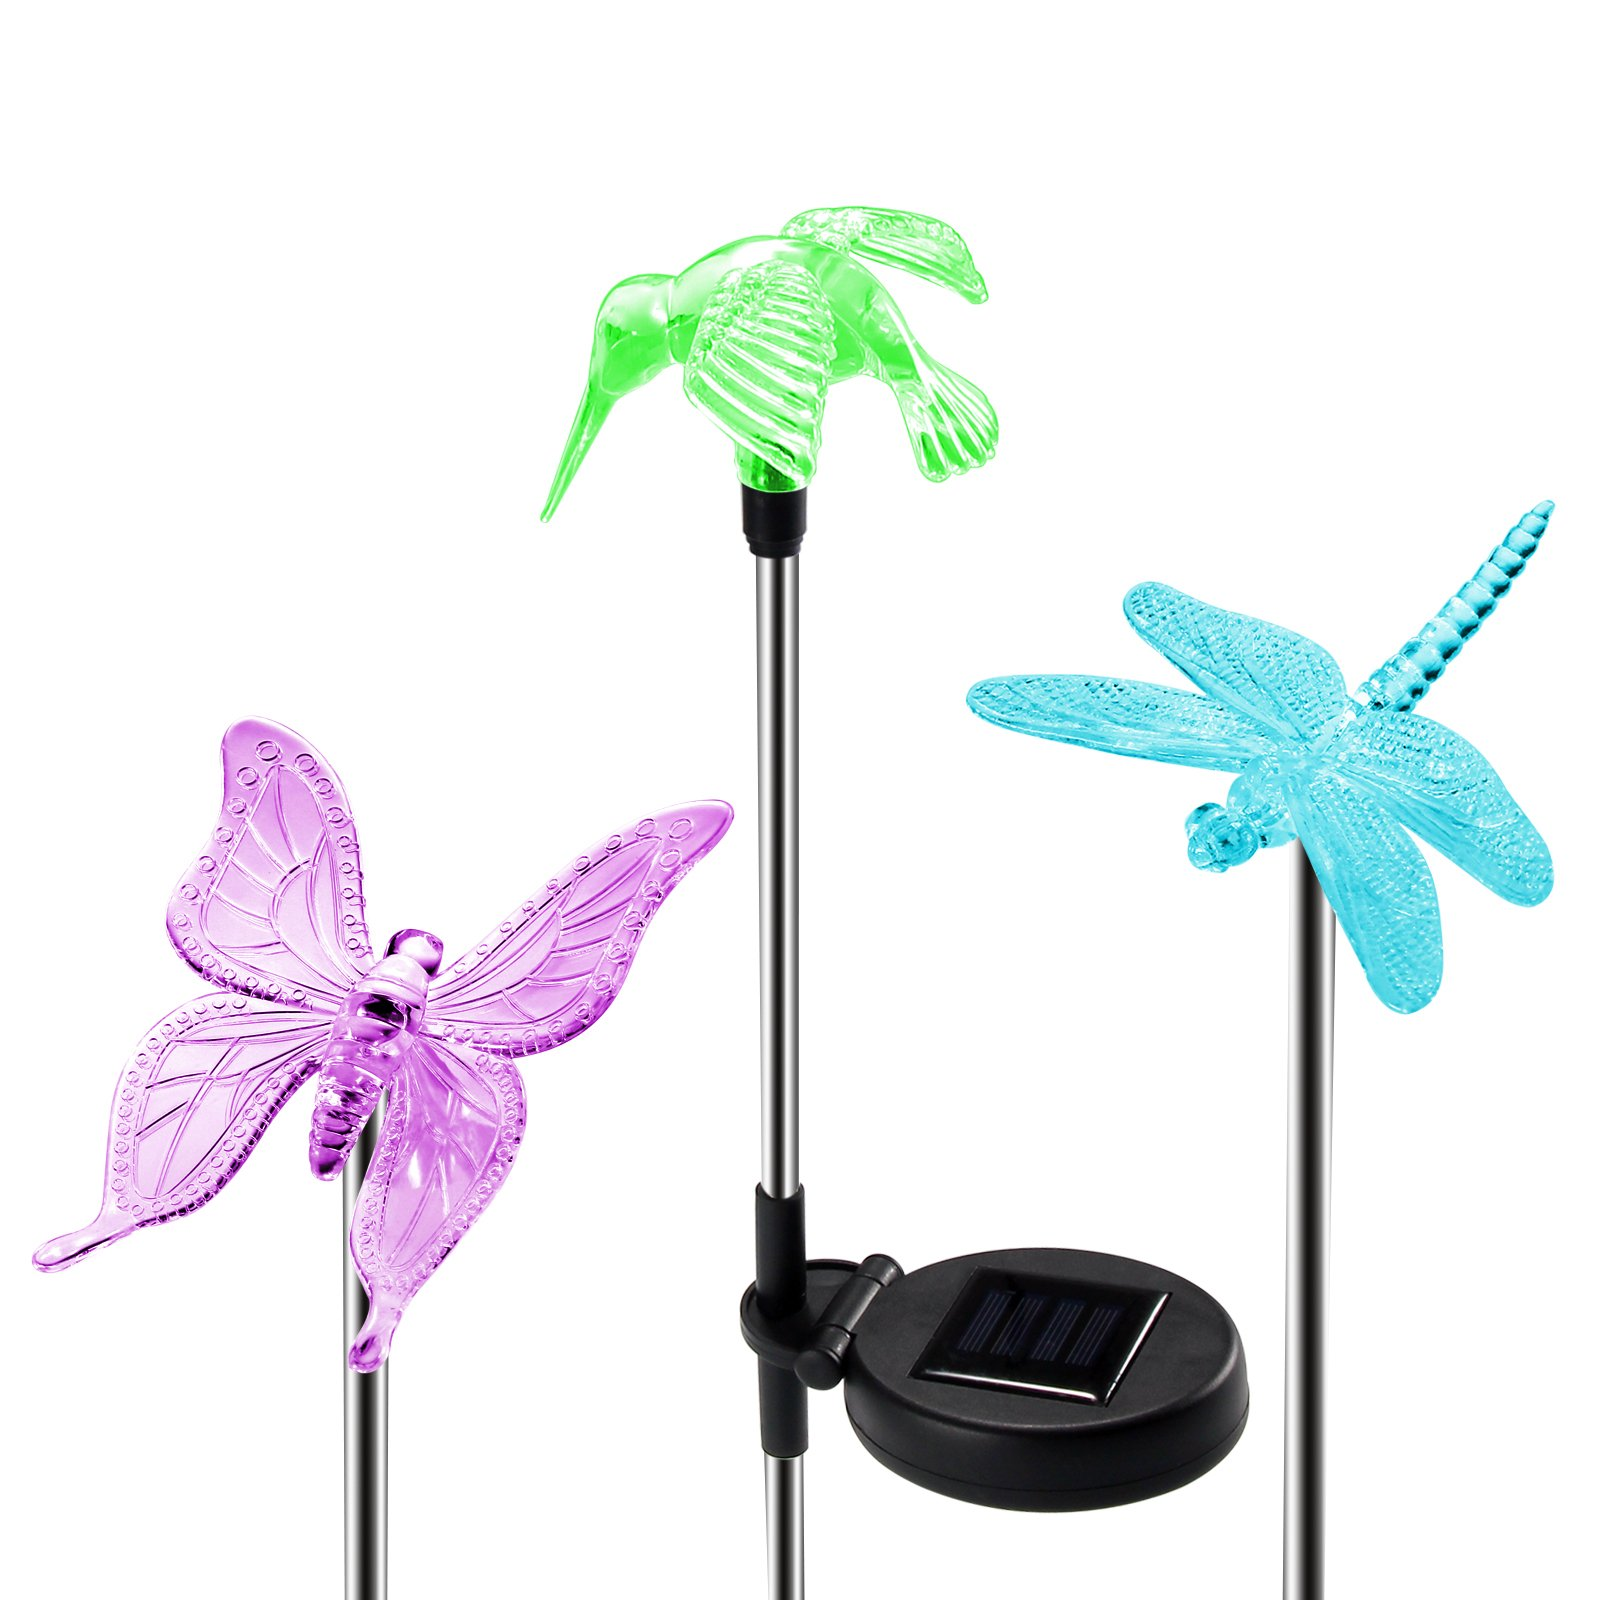 OxyLED Solar Garden Lights, 3 Pack Solar Stake Light Hummingbird Butterfly Dragonfly, Solar Powered Pathway Lights, Multi-Color Changing LED Lights, Outdoor Lighting for Garden/Patio/Lawn